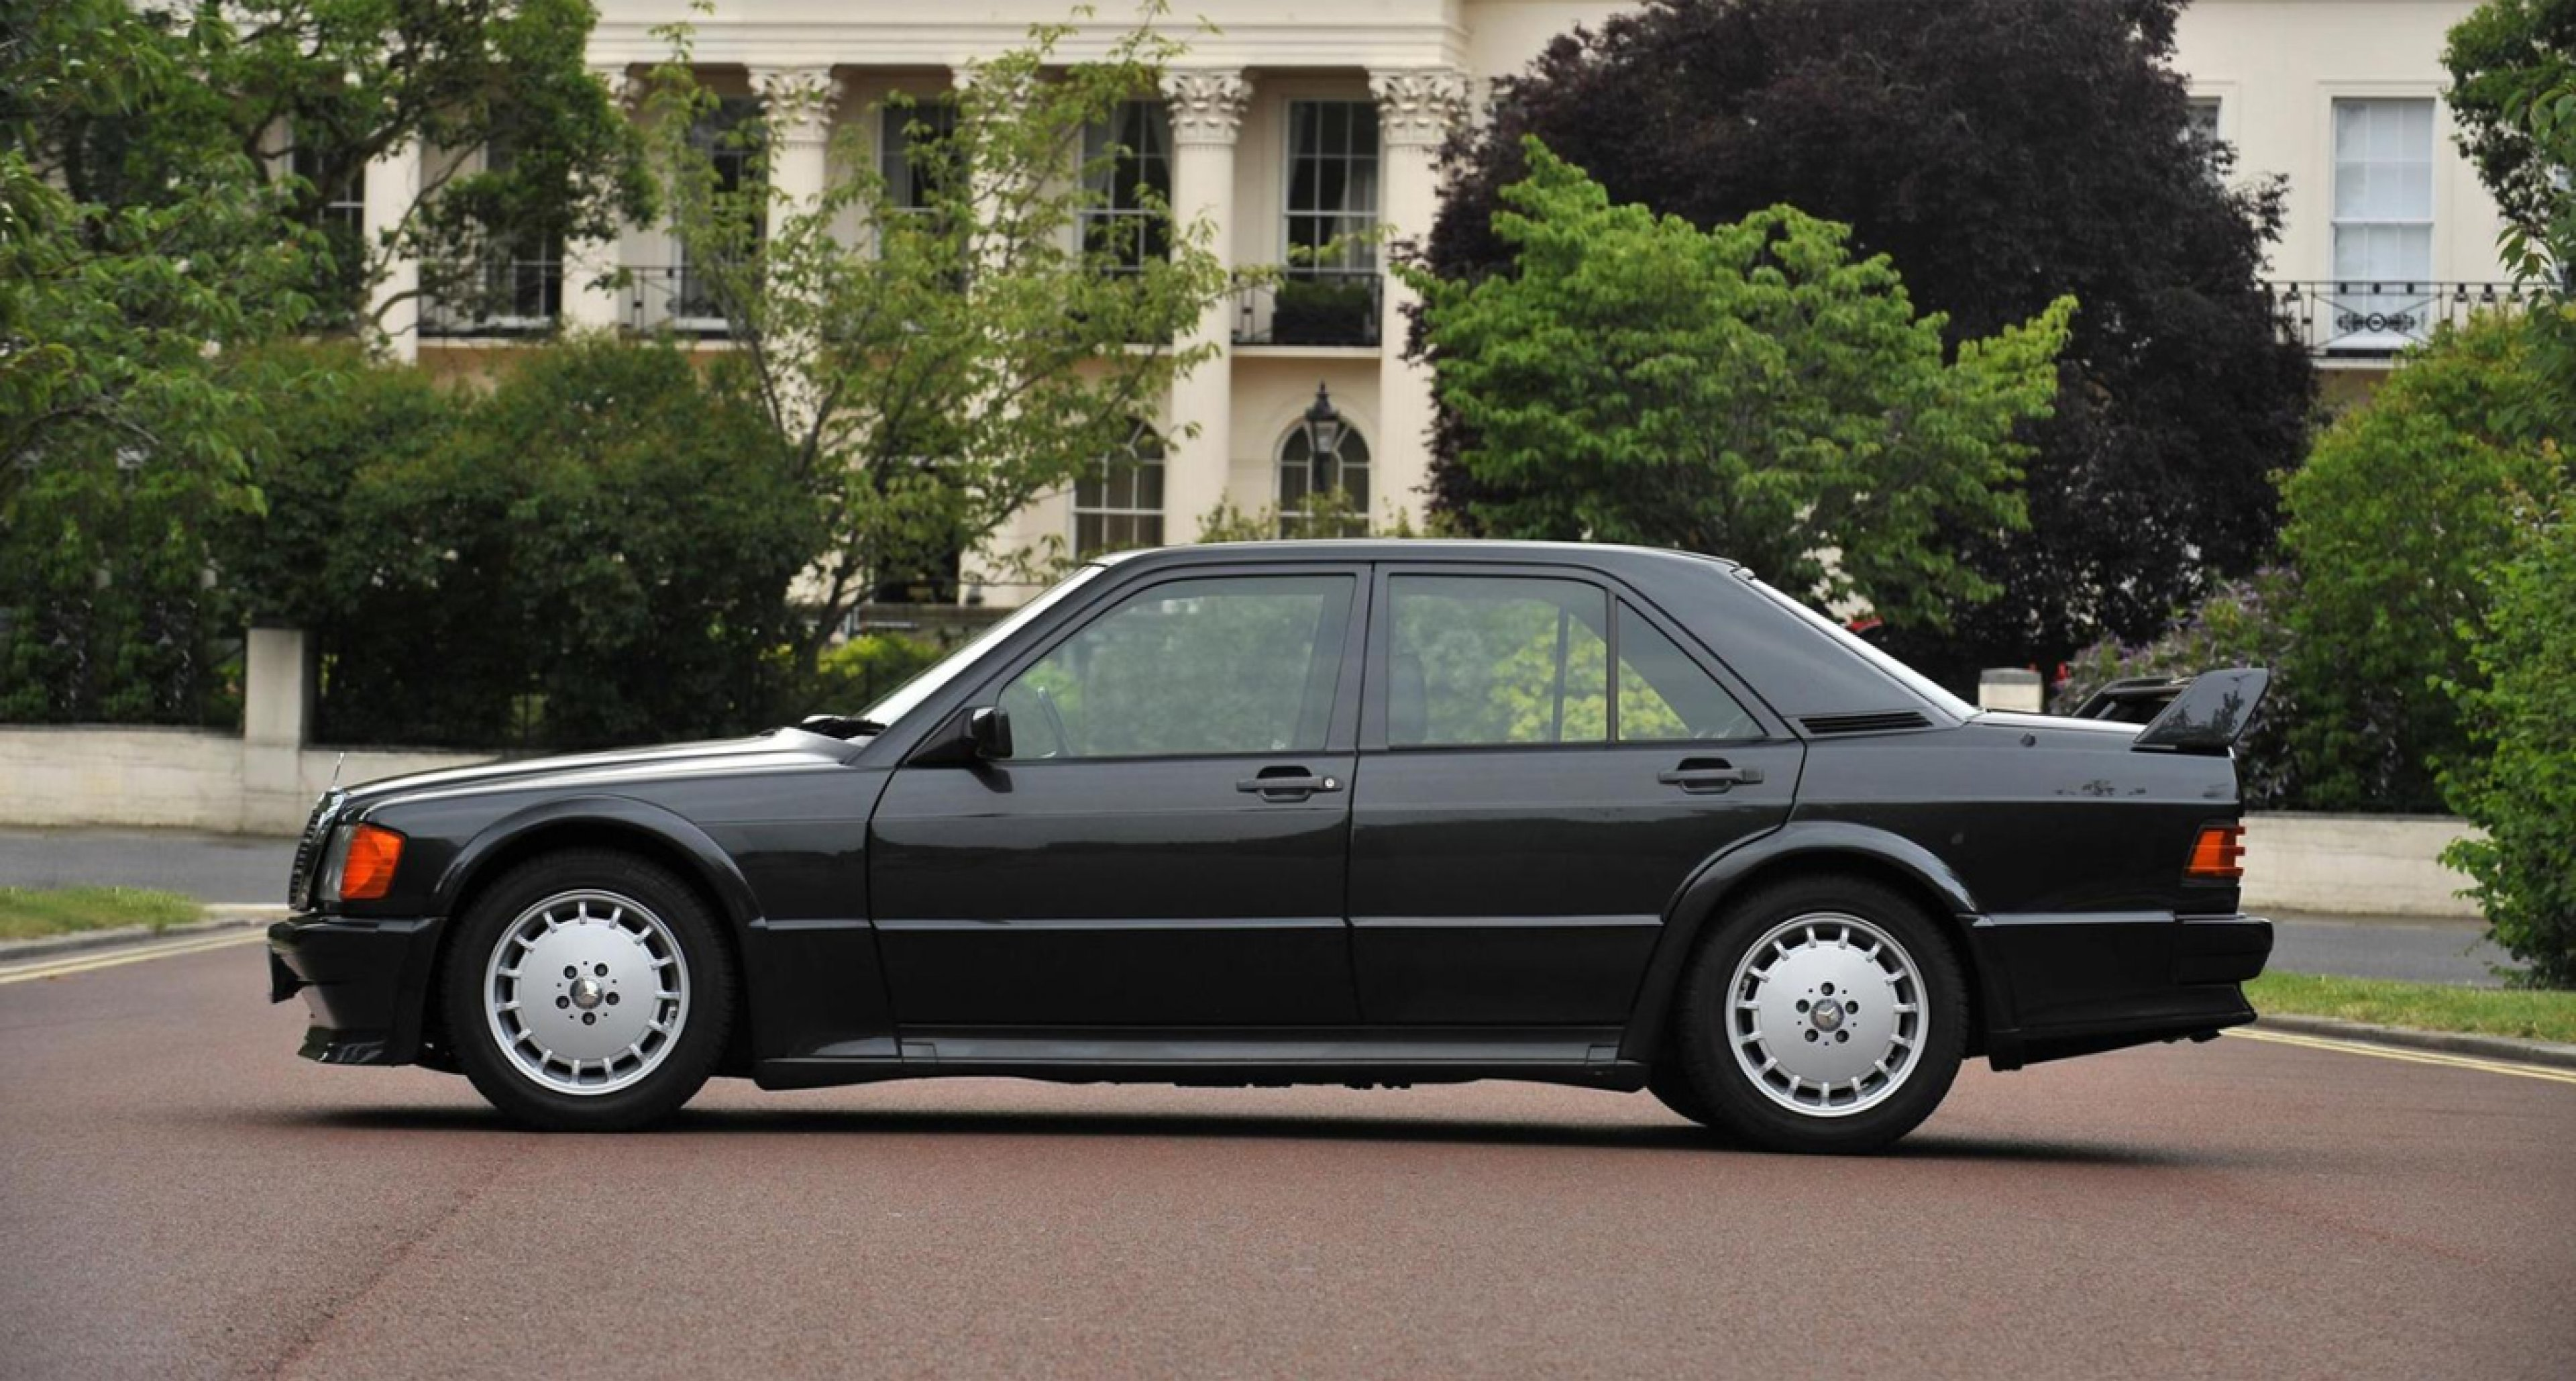 Lot 45: 1989 Mercedes-Benz 190E 2.5-16 Evolution (€ 25,000 - 30,000)